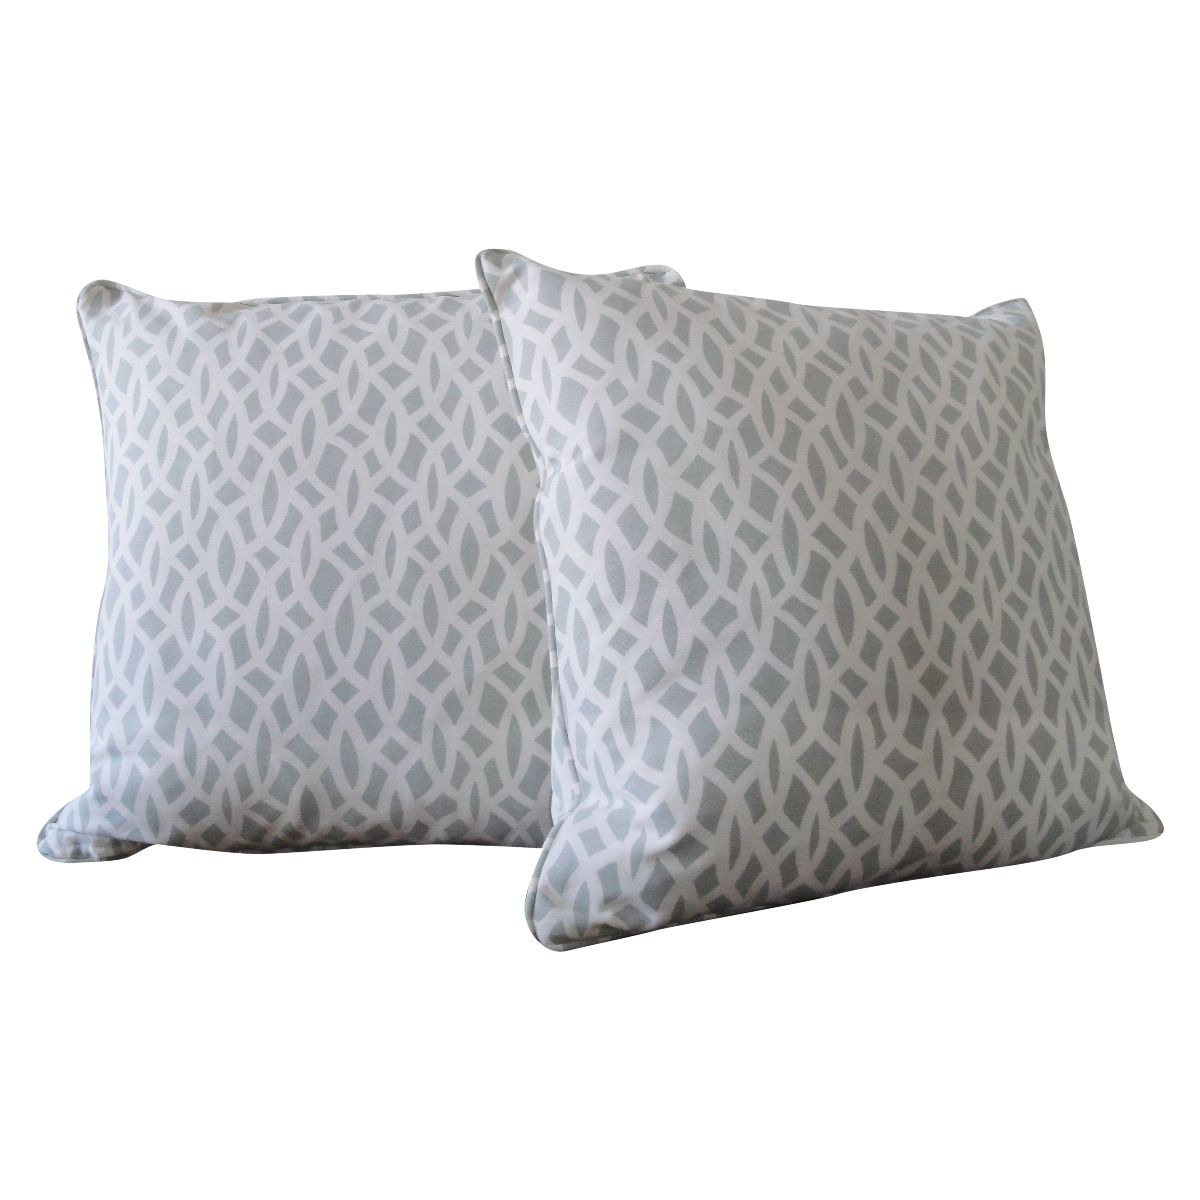 Trellis Accent Pillows